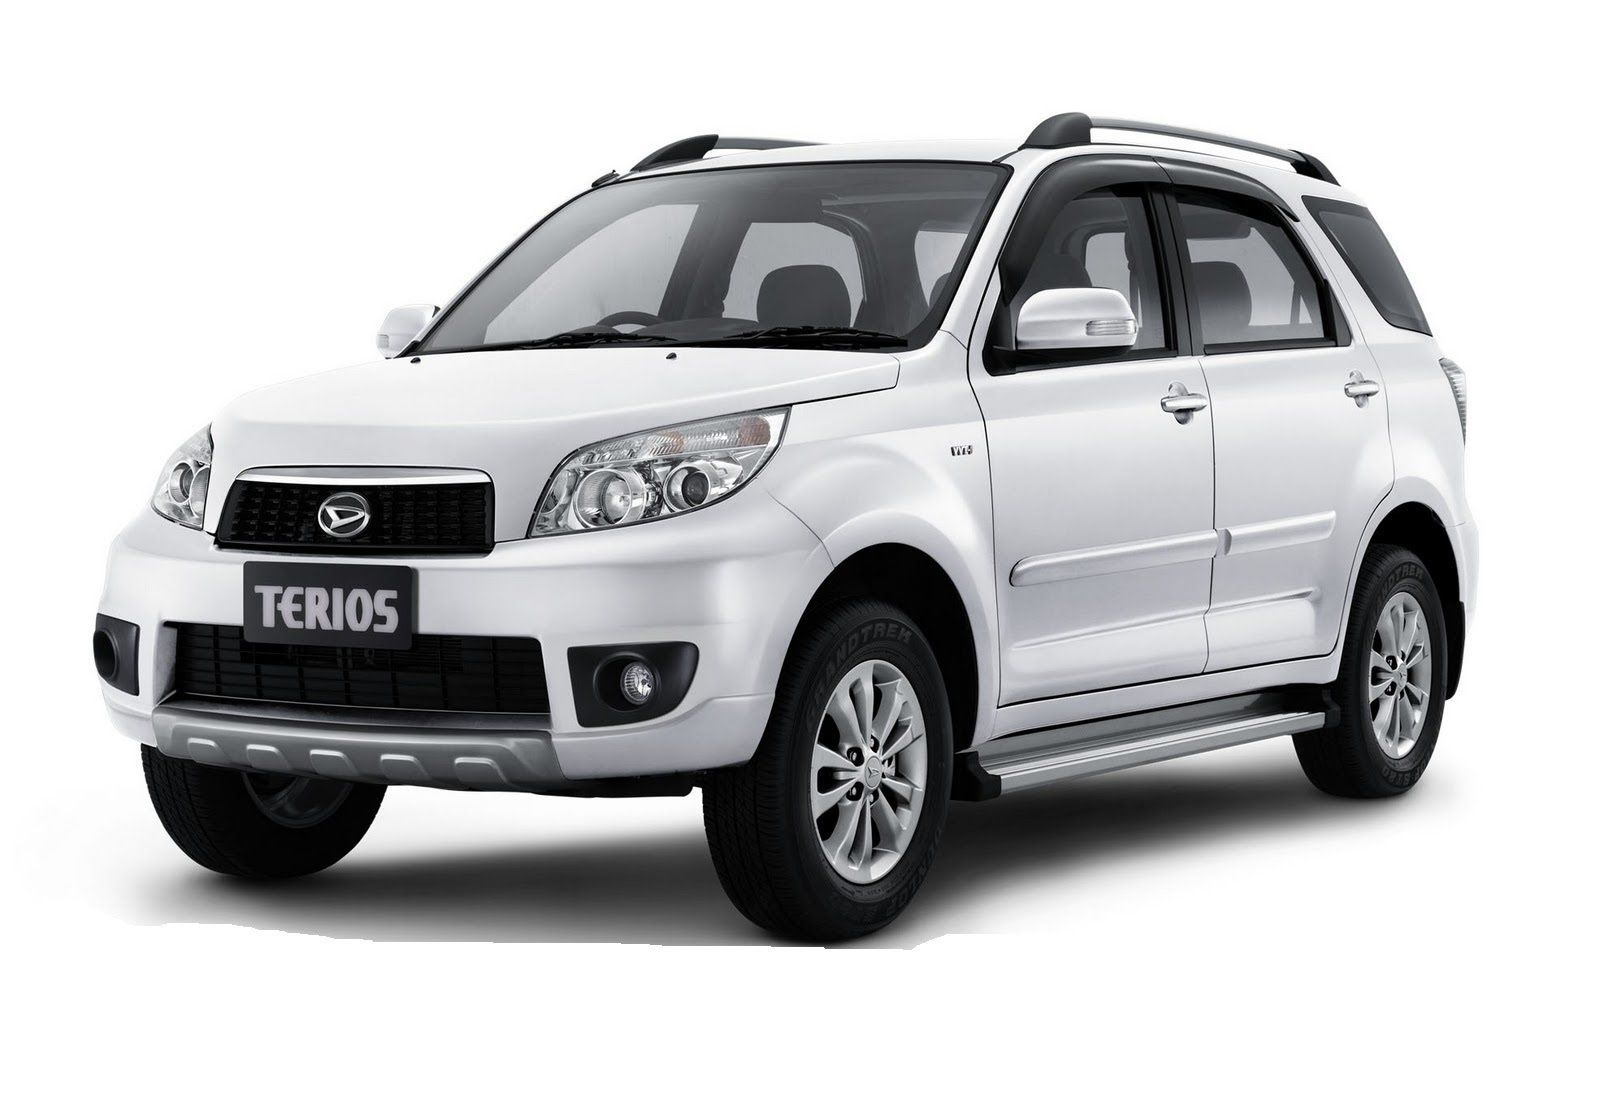 medium resolution of the daihatsu terios is a mini suv first released in 1997 by the japanese car manufacturer daihatsu